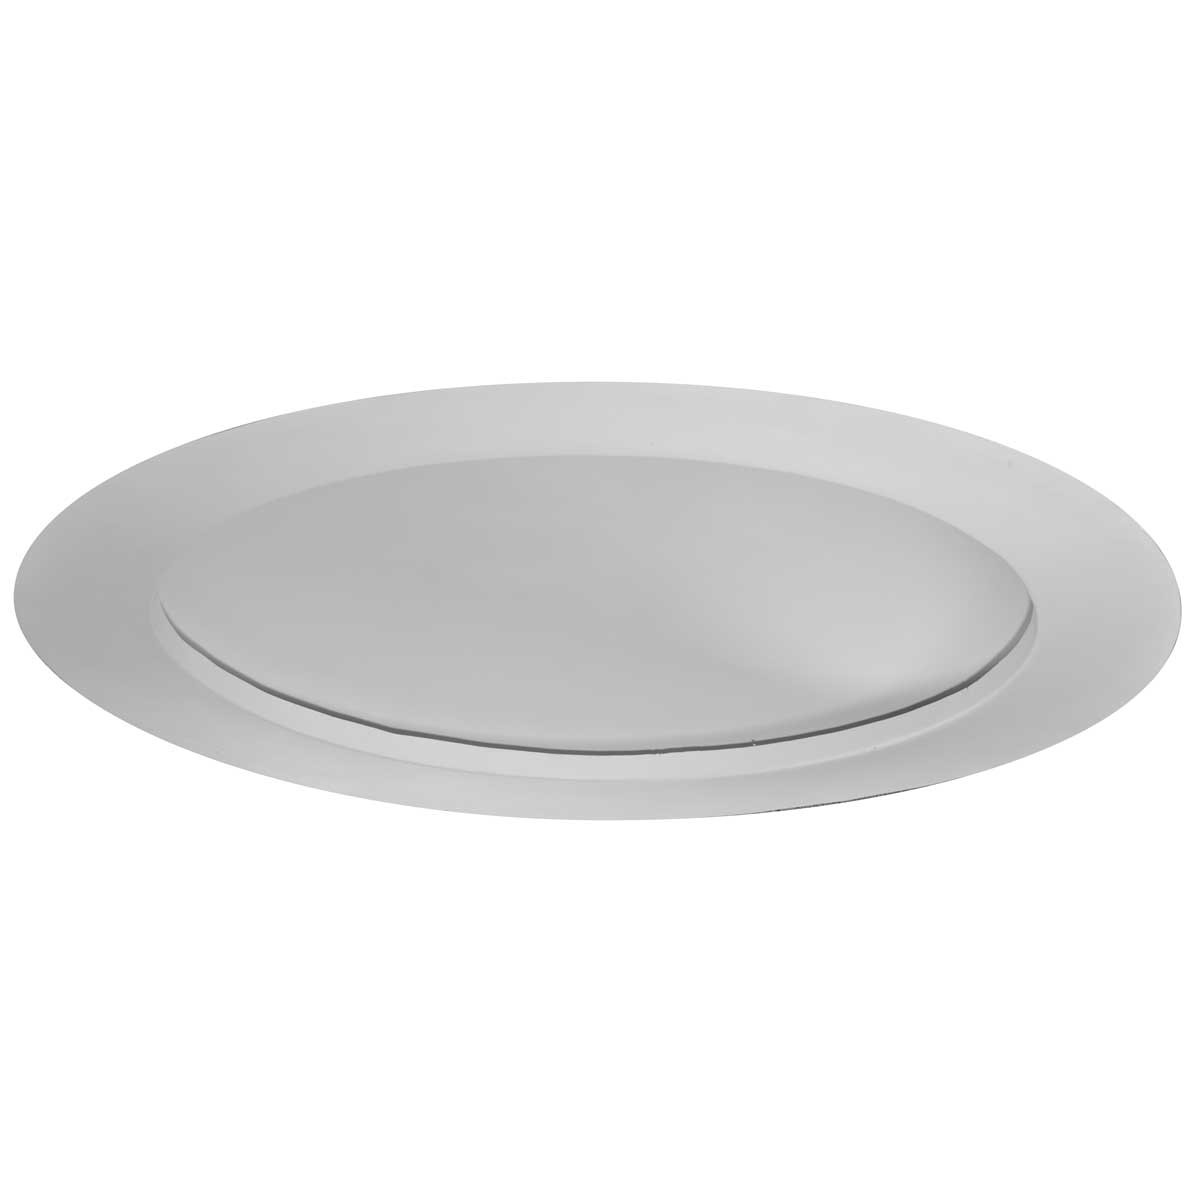 """EM-DOME38AR - 38 5/8""""OD x 35 7/8""""ID x 7""""D Artisan Ceiling Dome with Light Ring (35 5/8""""Diameter x 7 1/2""""D Rough Opening)"""